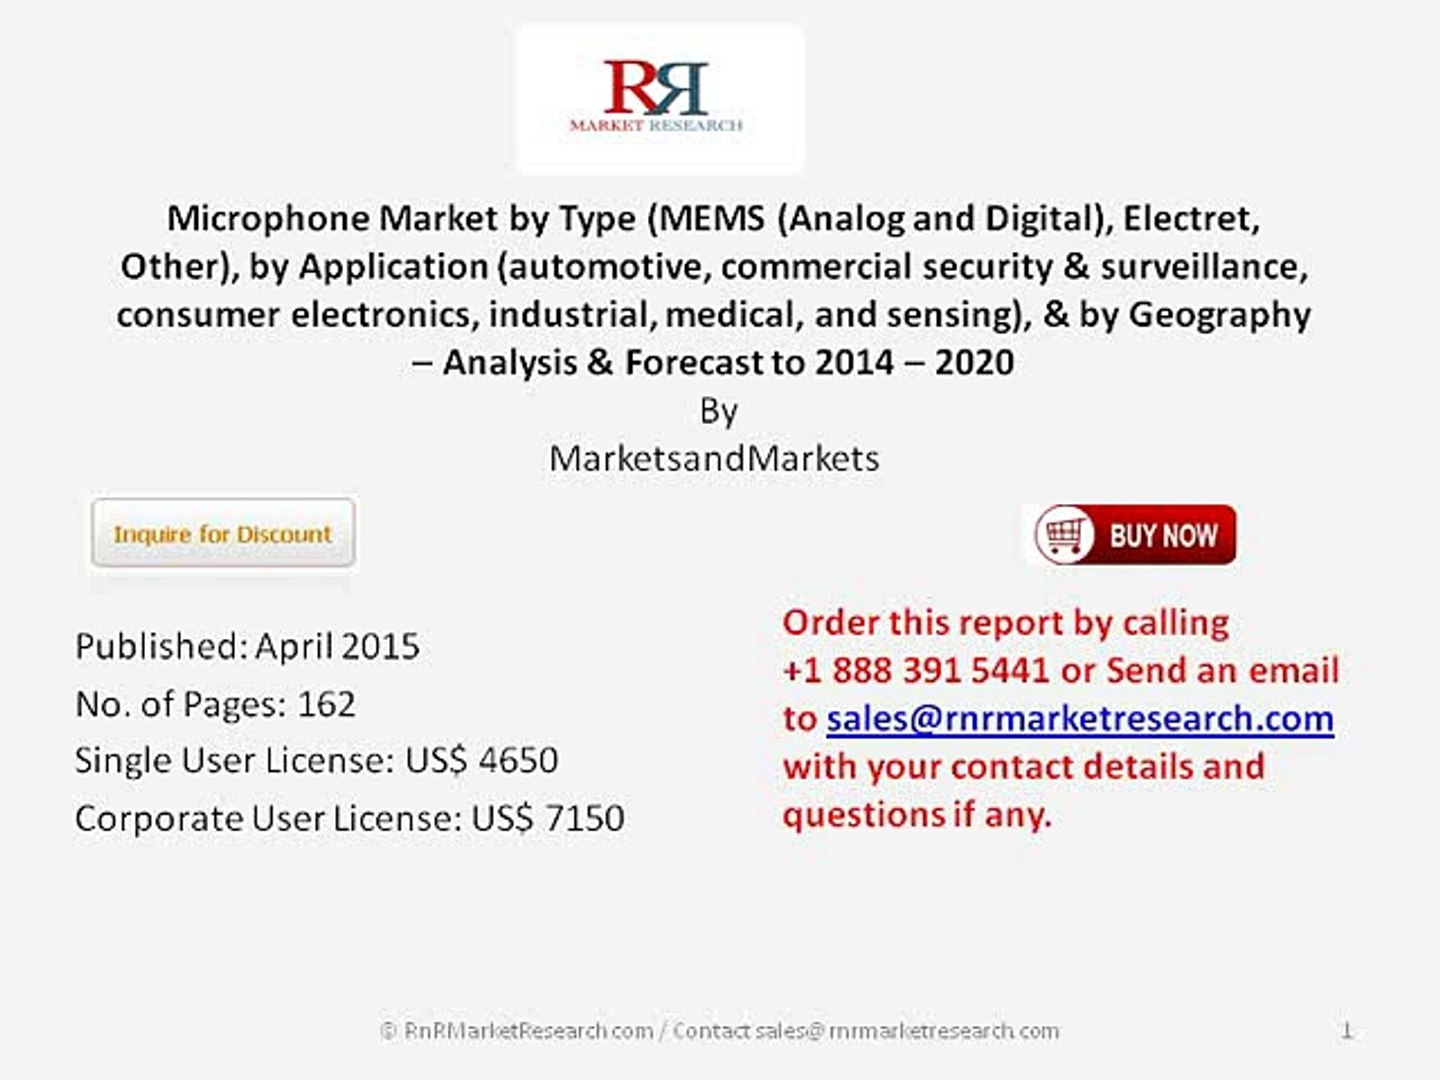 Worldwide Microphone Market Trends 2020 by Market Size, Type and Application